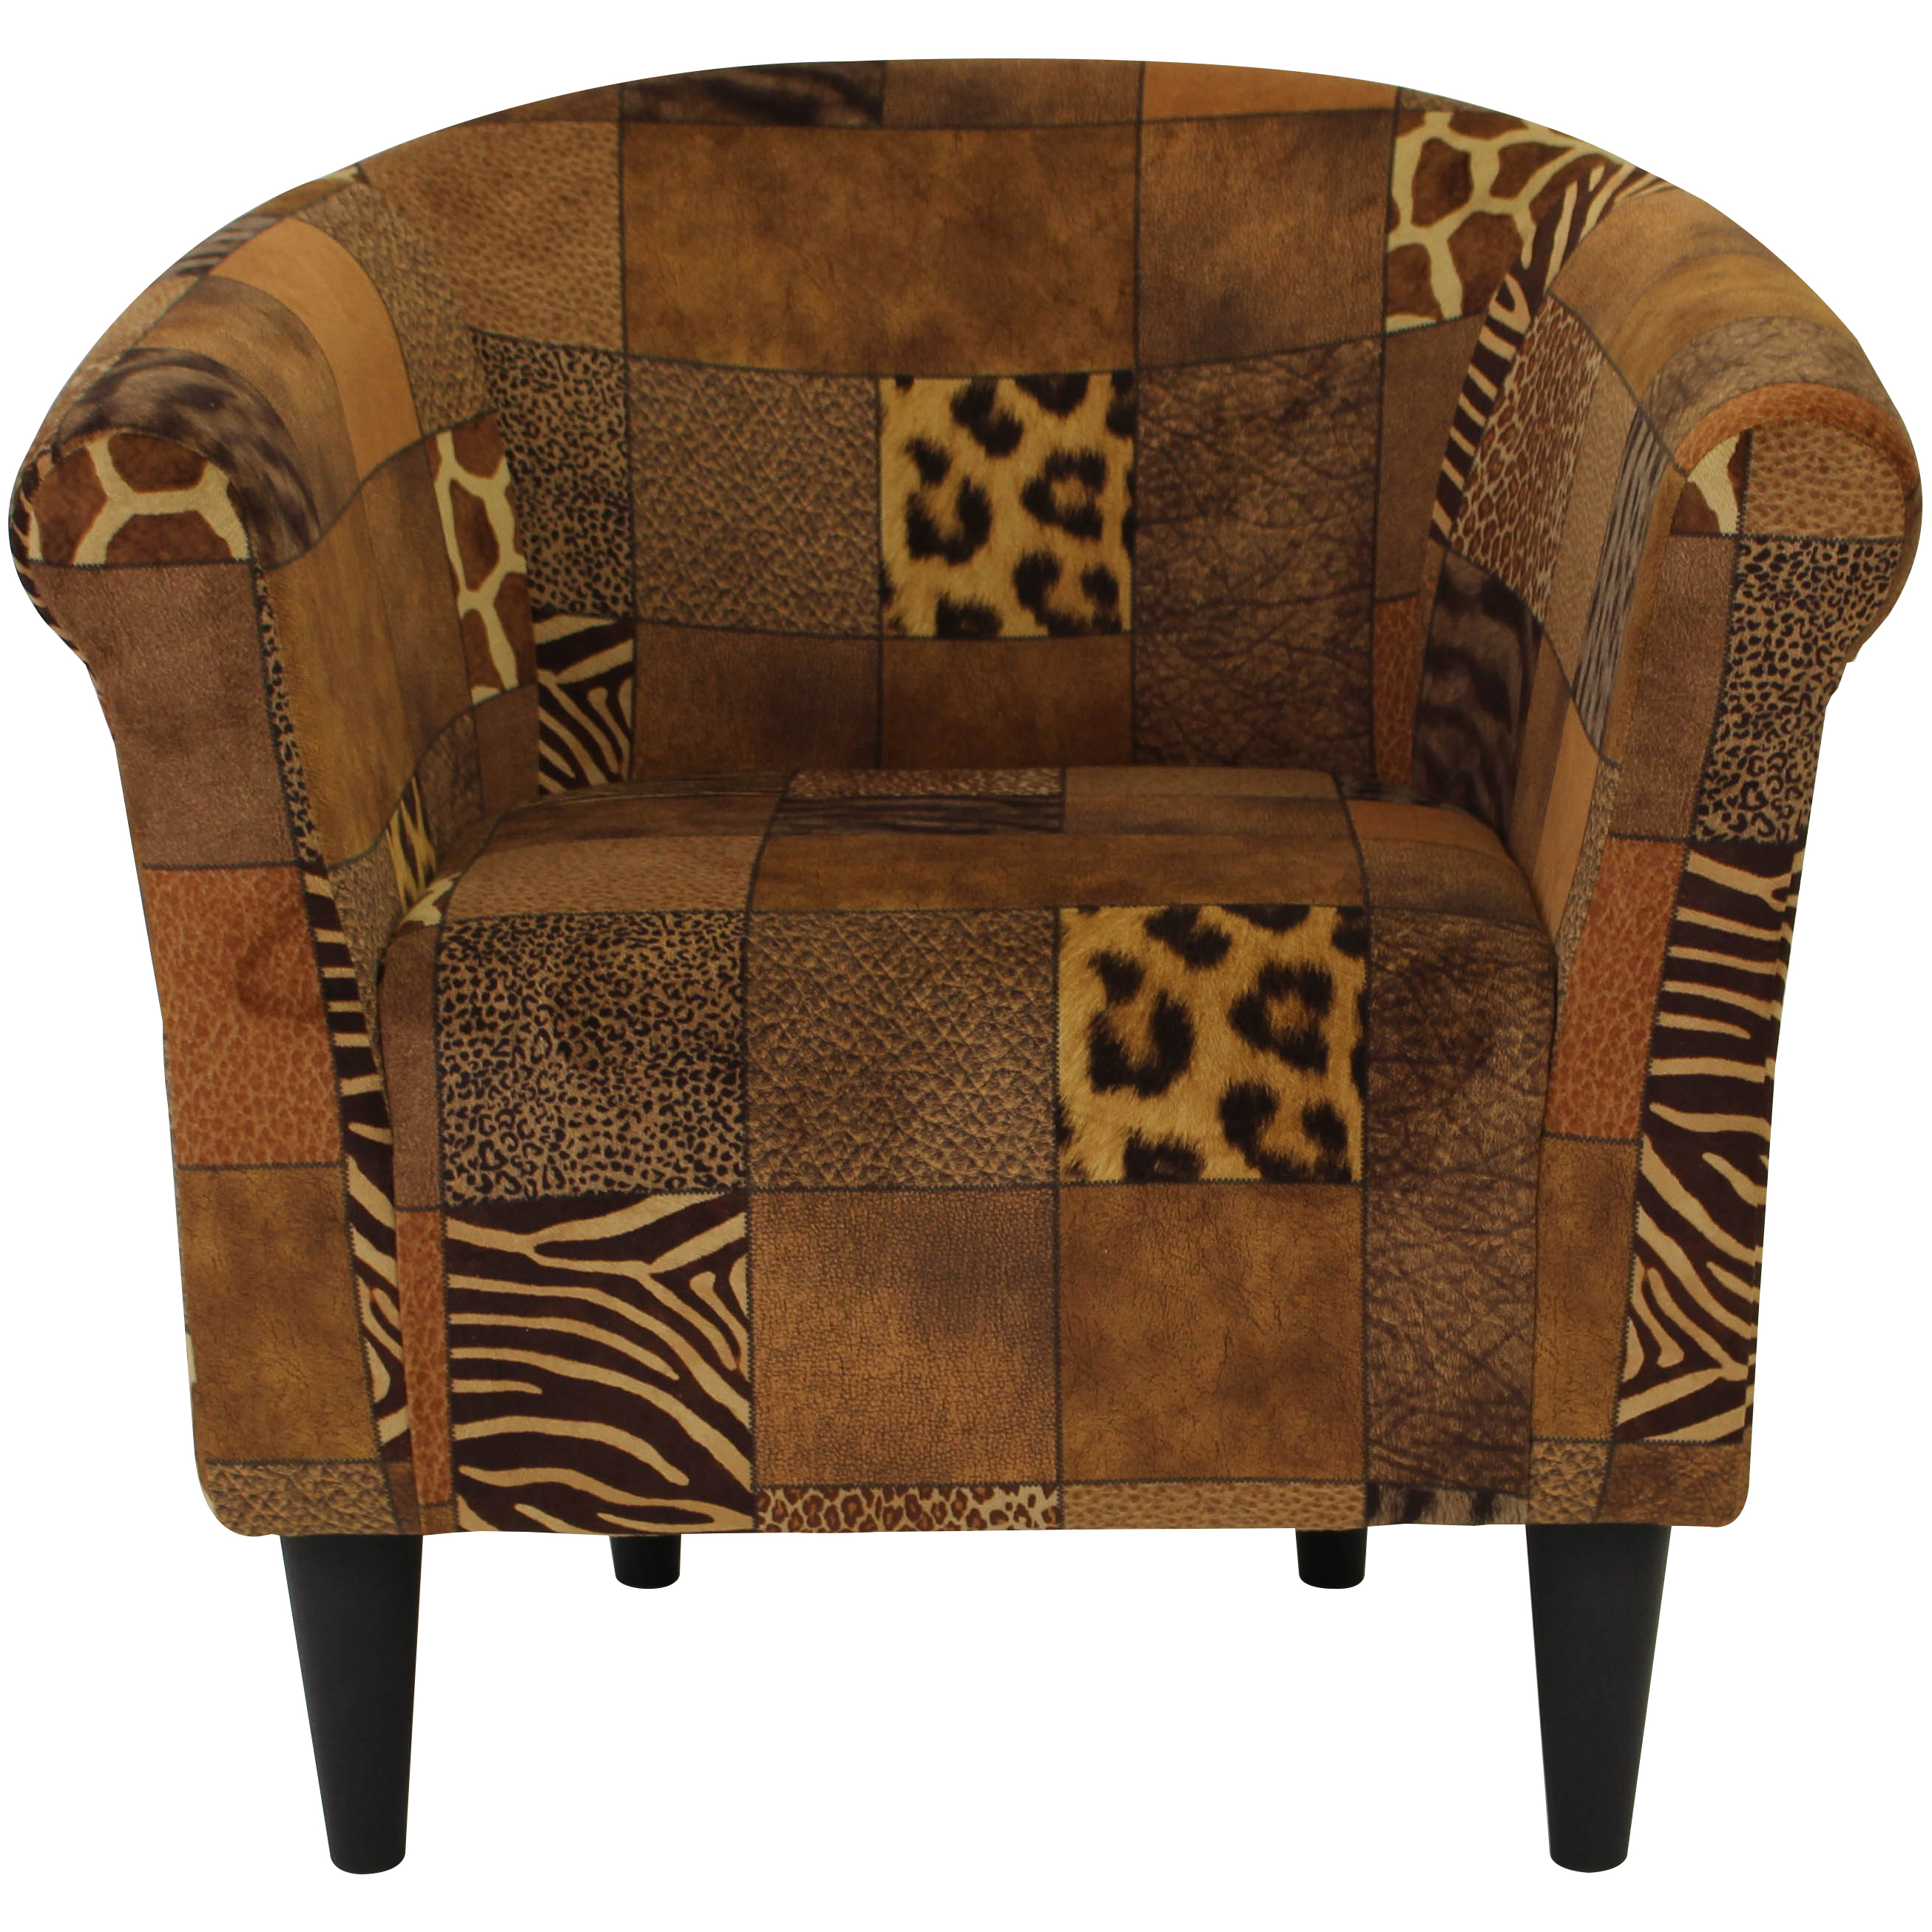 Newport Club Chair - Cowhide Black